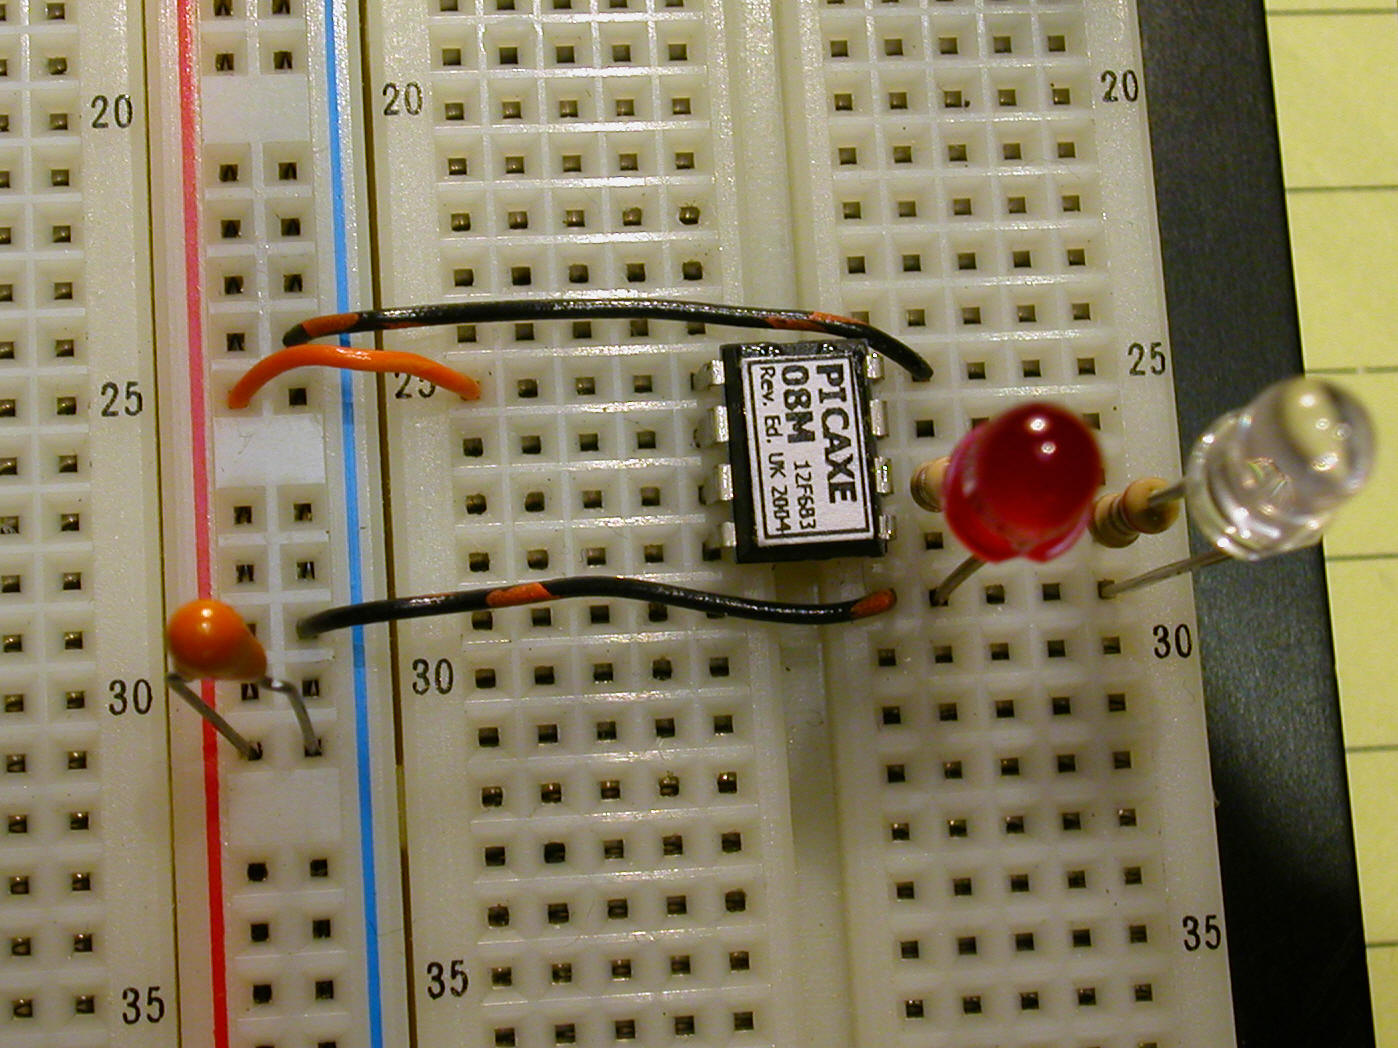 Pulsed Ir Sensor Infraredemitter38khz555timercircuitschematicgif Below Are Two Programs For The Picaxe I Think That You Will Agree They Simple As Well First Program Turns On Leds Which Flash